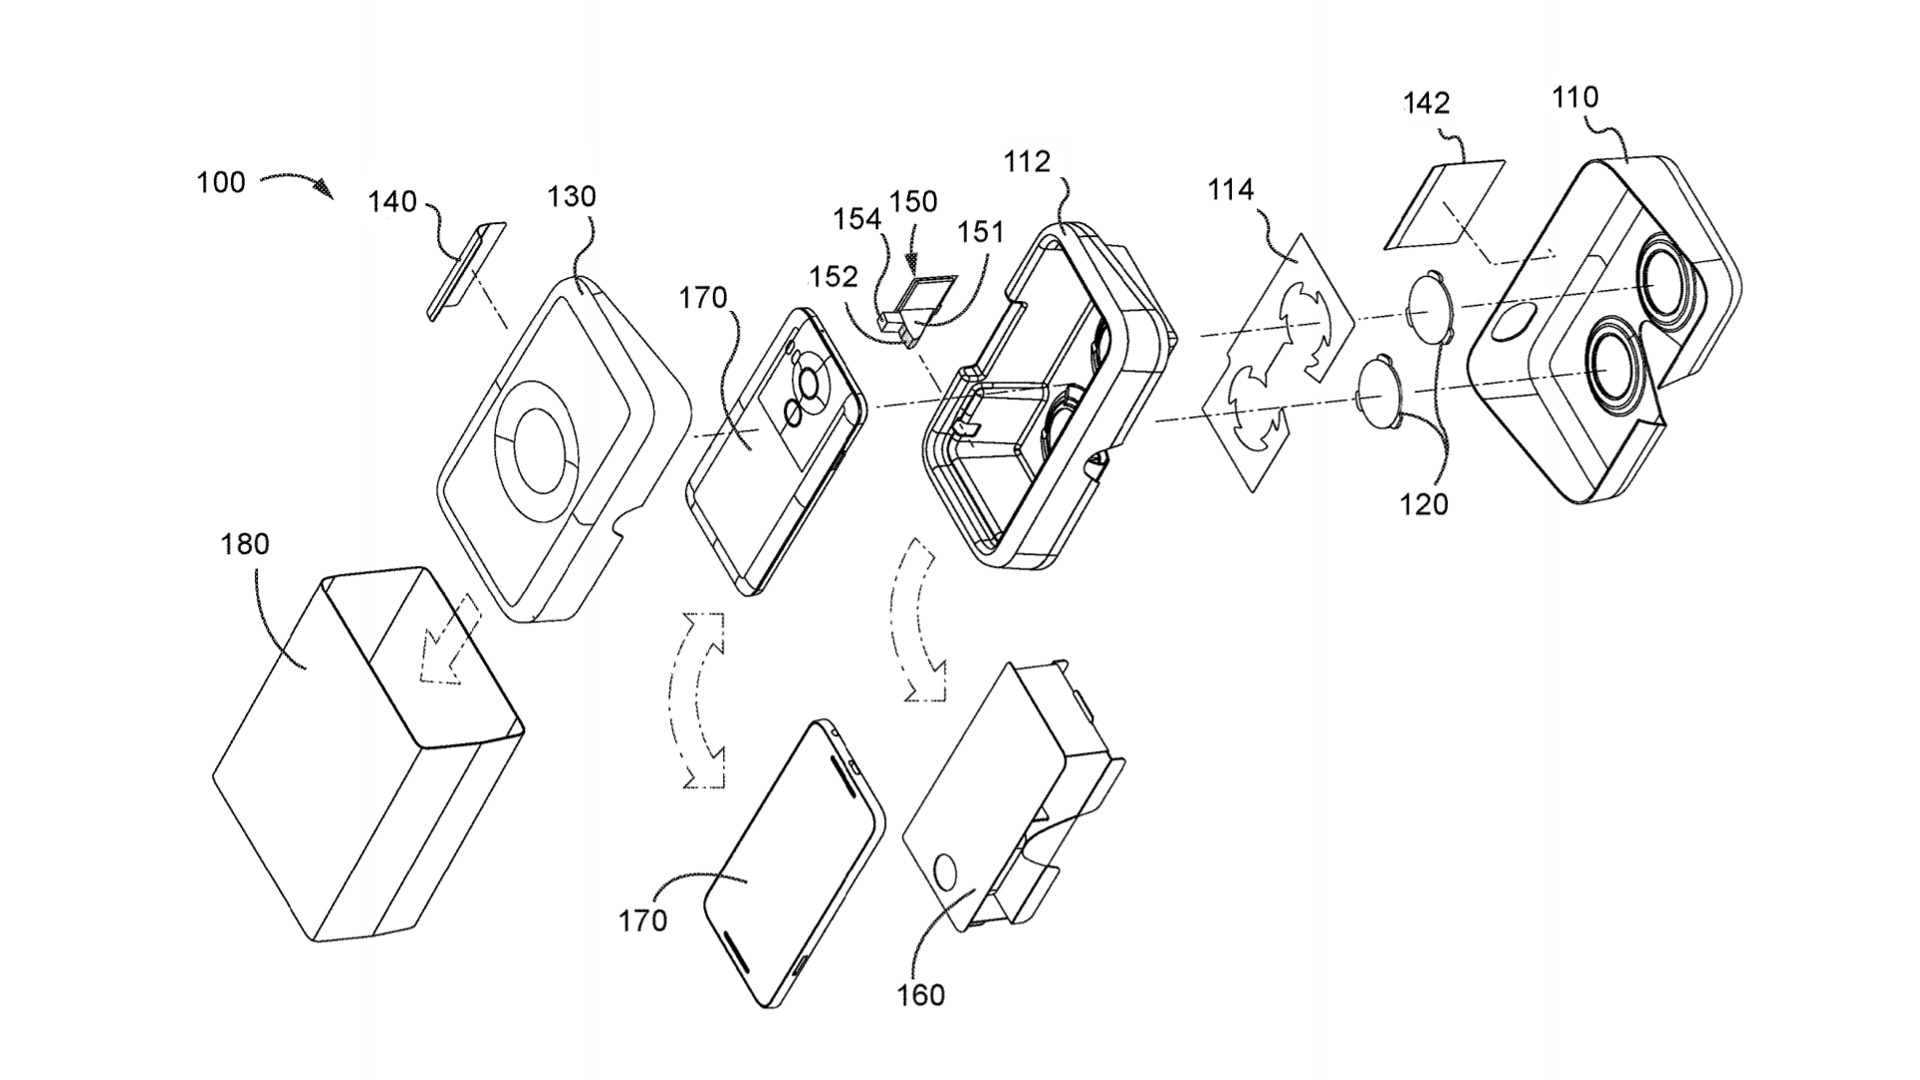 Google Files New Patent For Integrated Mobile Device Packaging And VR Headset